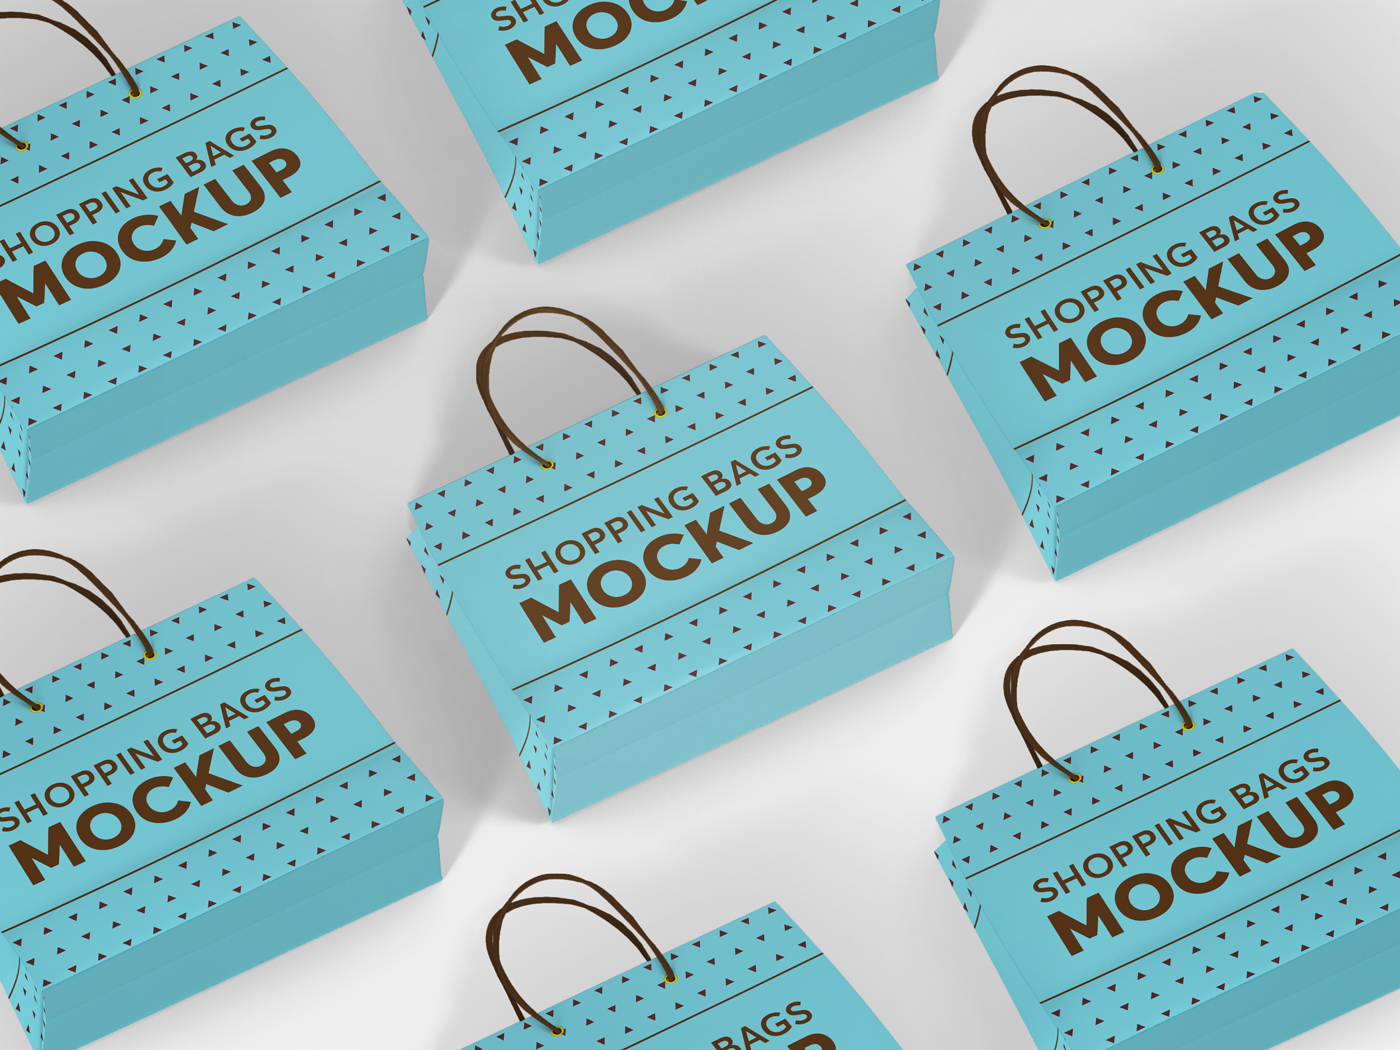 Shopping Bag Mockups V2 example image 12